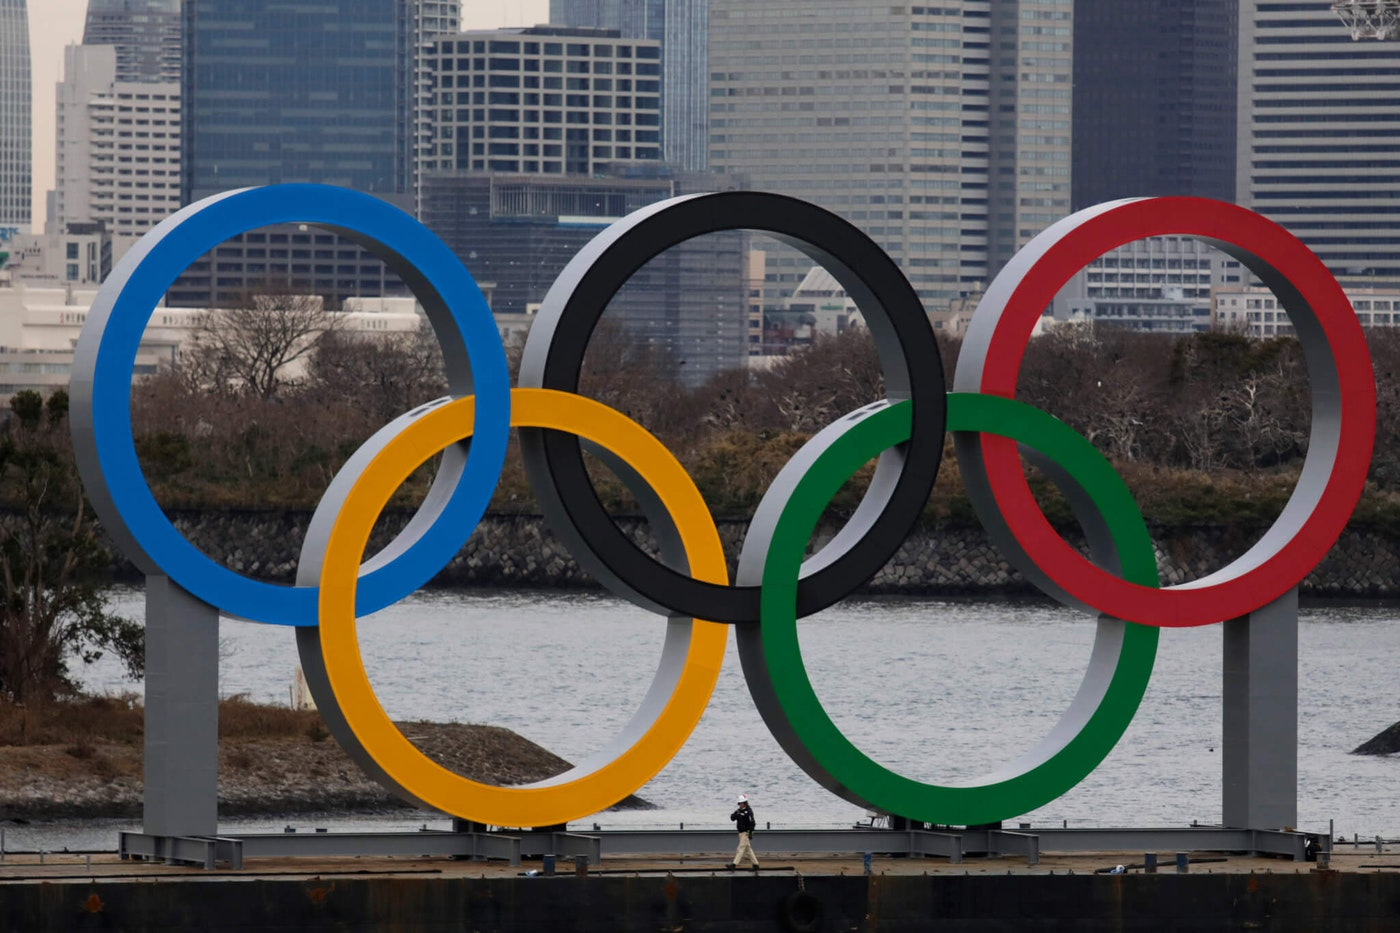 A worker is dwarfed by the Olympics Rings on a barge Friday, Jan. 17, 2020, in the Odaiba district of Tokyo. (AP Photo/Jae C. Hong)